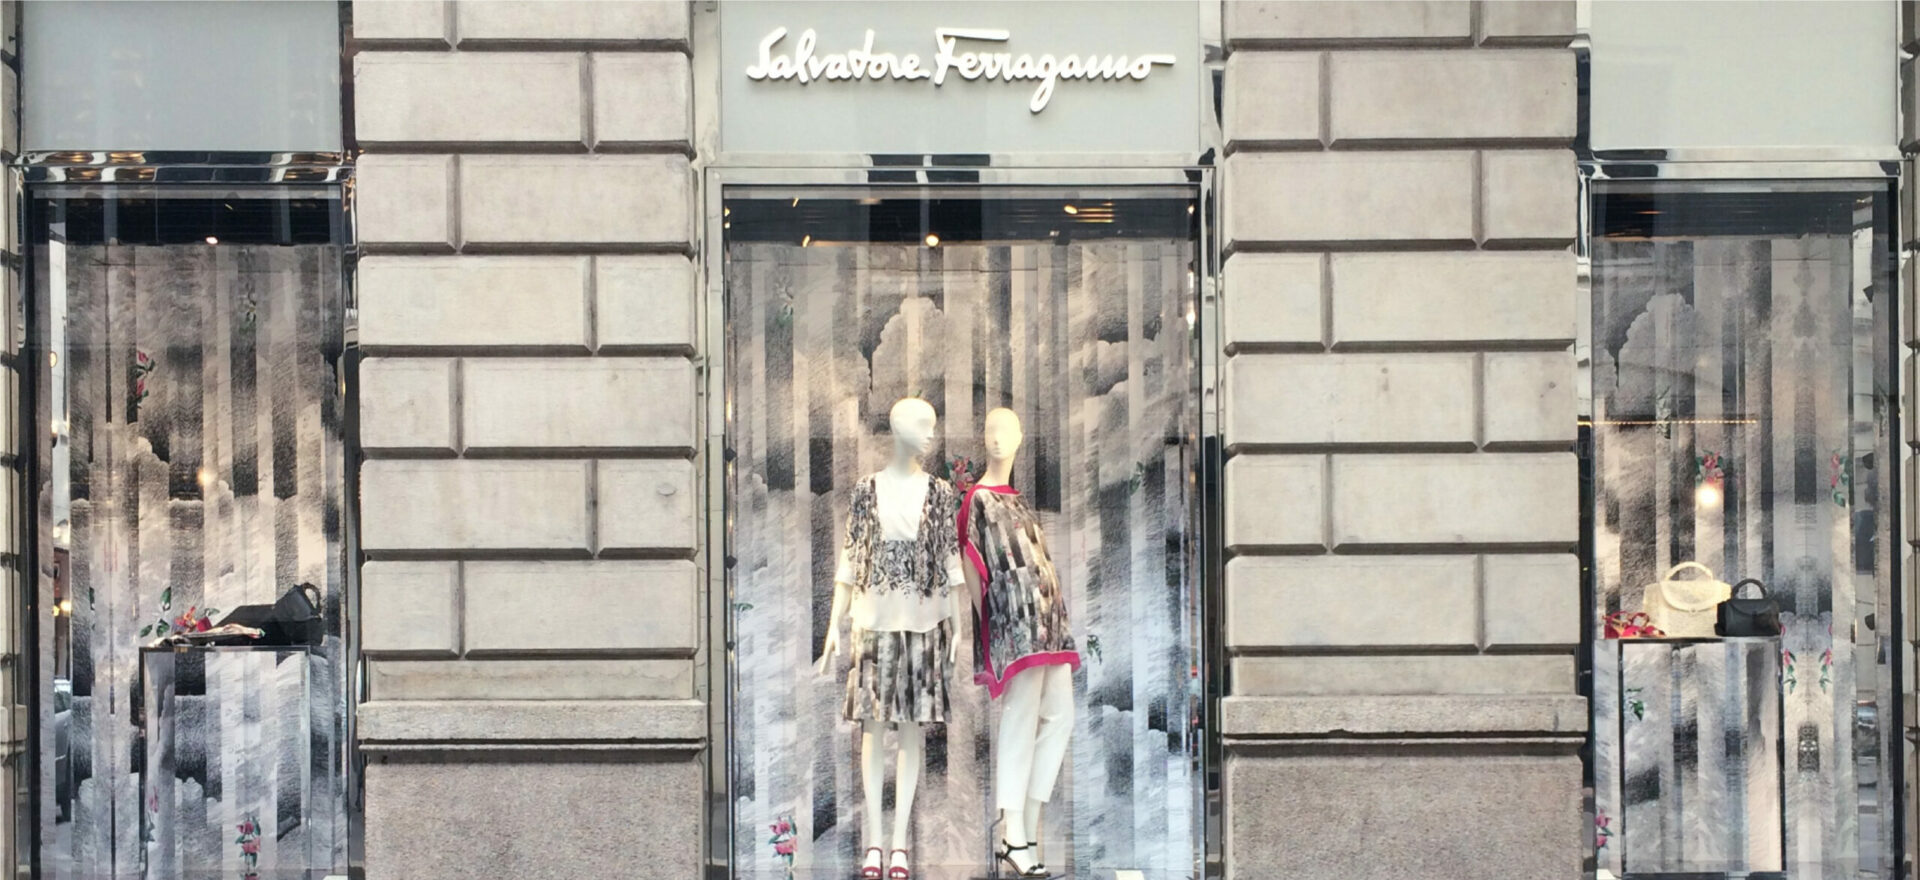 Art work by Mario Trimarchi for Salvatore Ferragamo Capsule Collection of exclusive scarf made out from orange fibers. Design of the shop windows of Salvatore Ferragamo shop around the world.